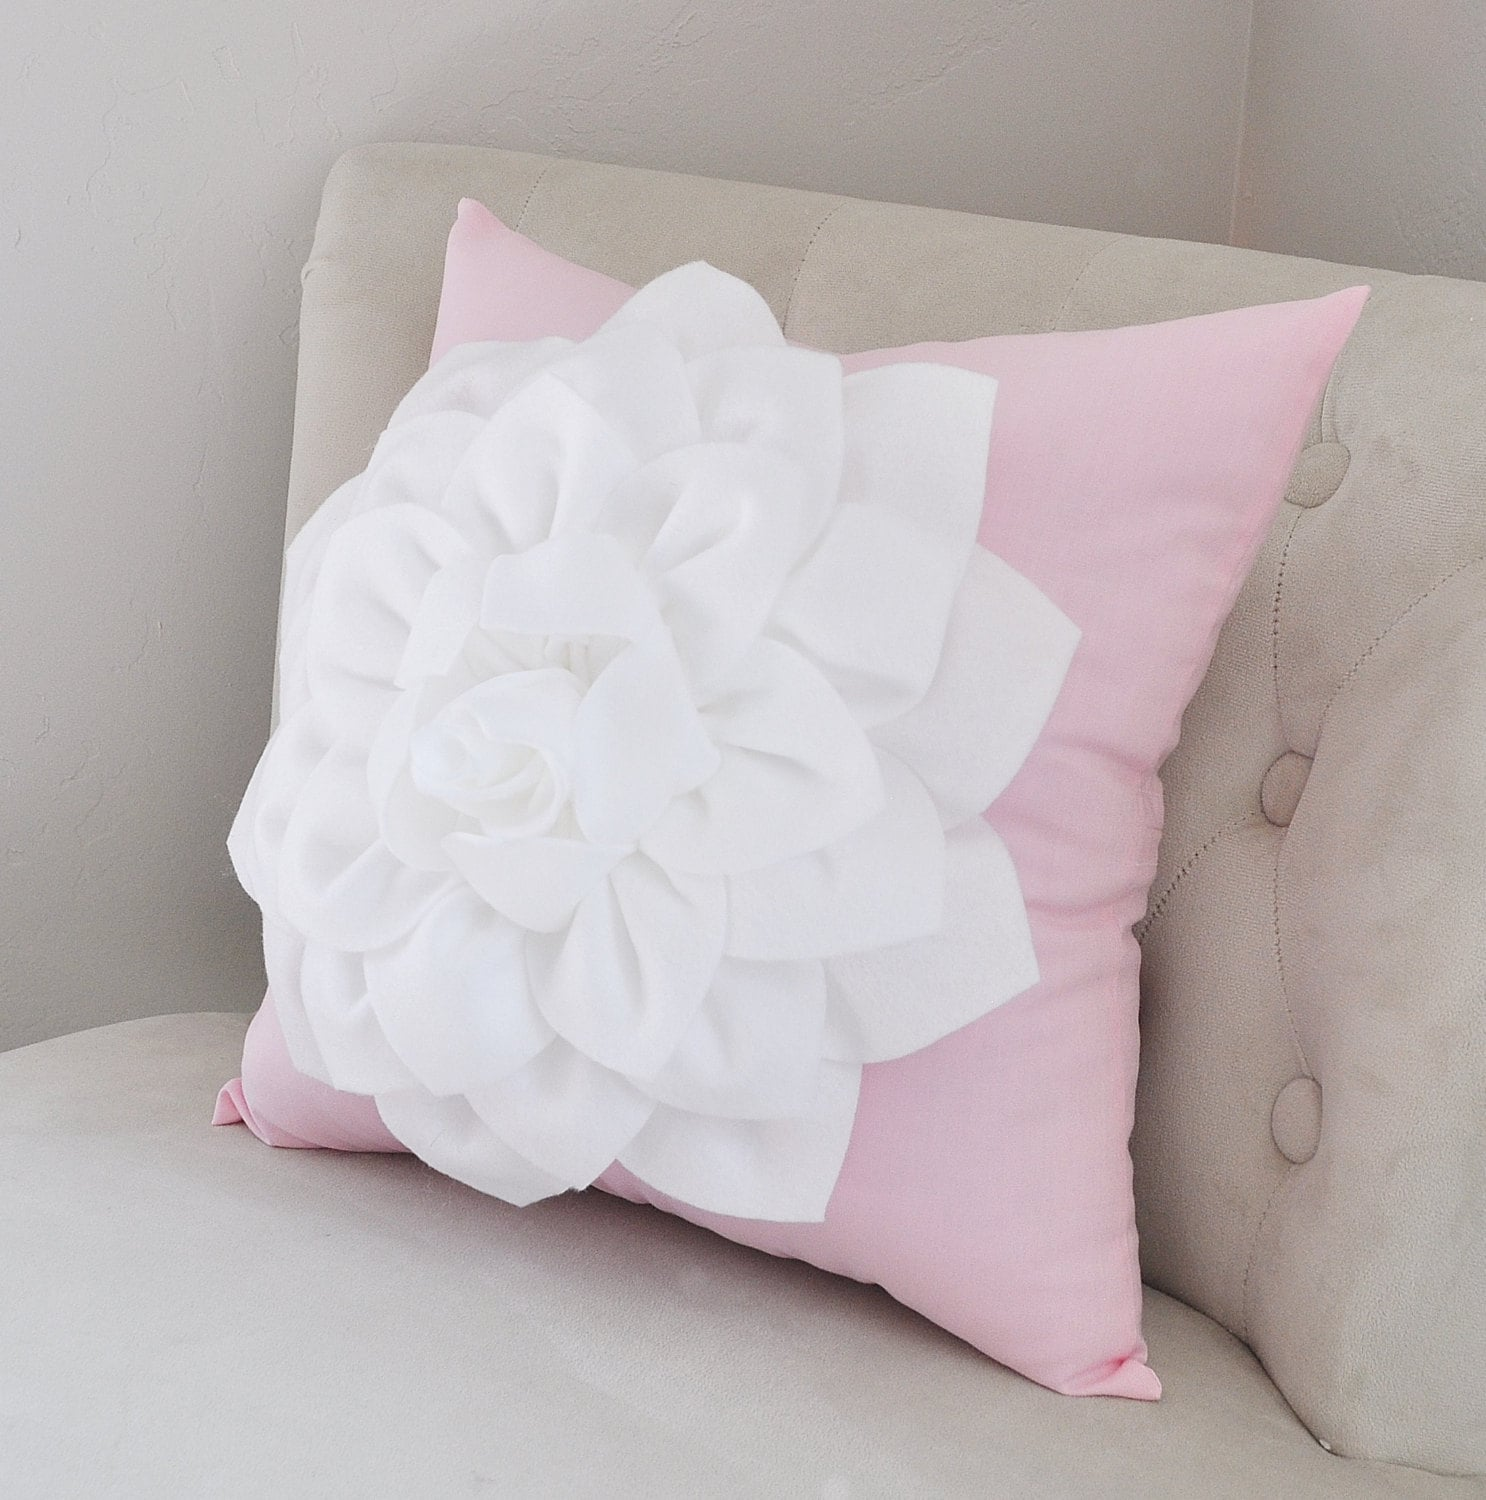 velvet round pillow gallery couch throw cute pale pink light pillows of for cushion beautiful a diy mess